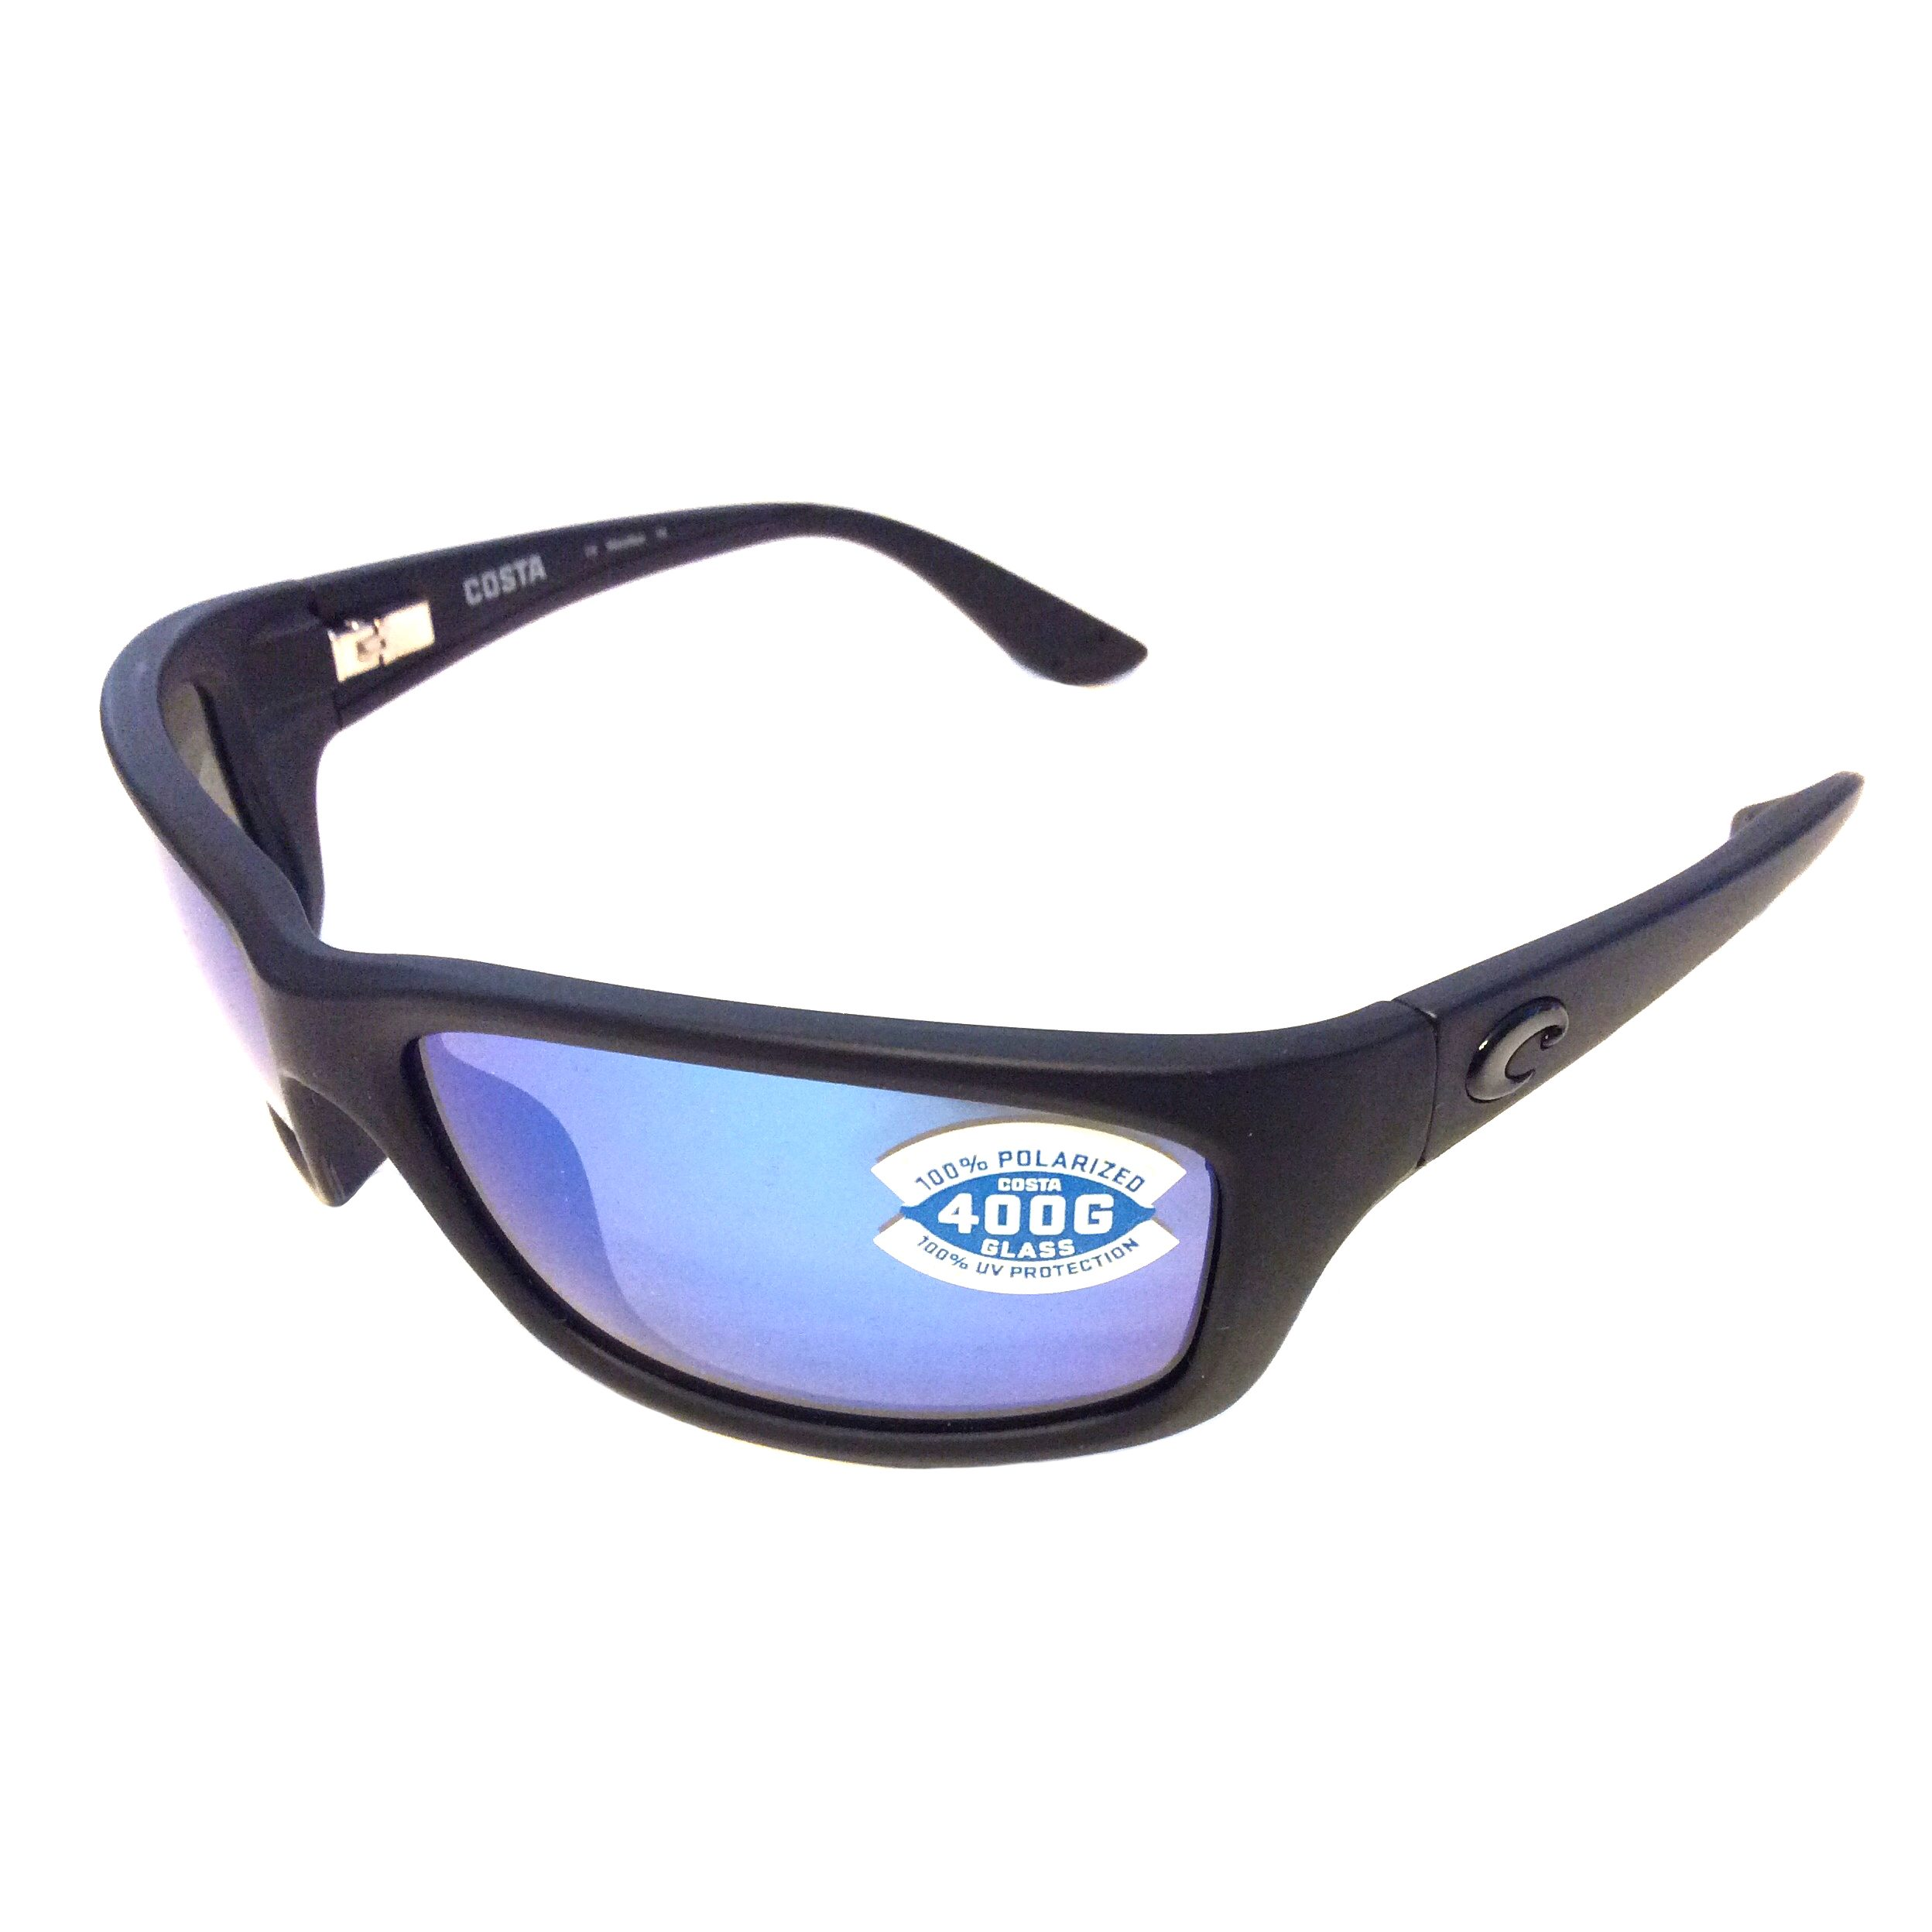 34b08ede12 Costa Del Mar Jose Polarized Sunglasses « Heritage Malta